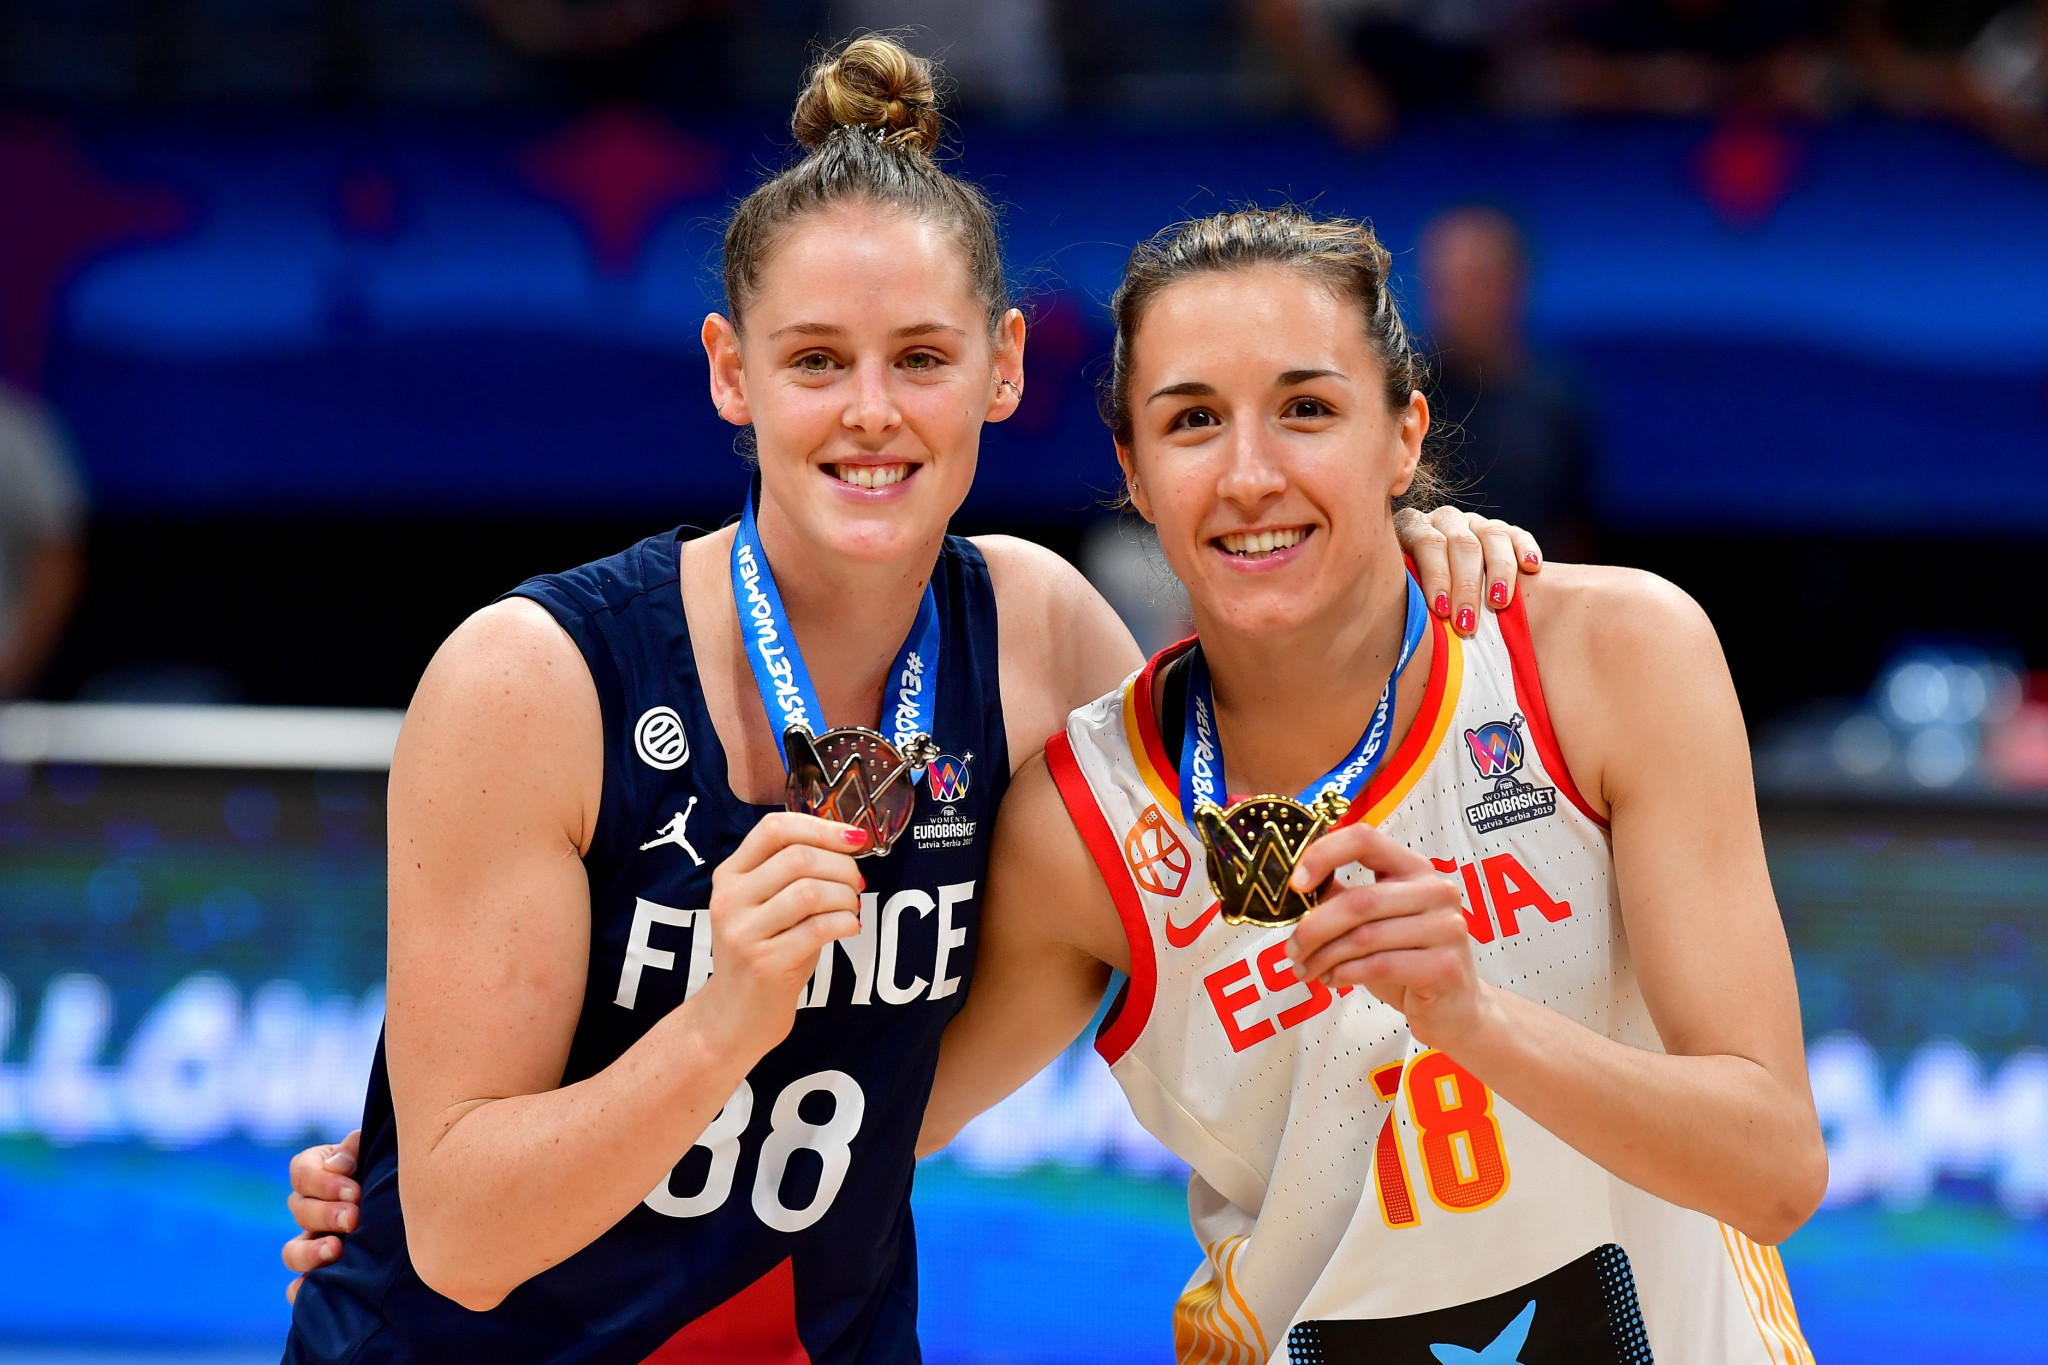 France and Spain will co-host the FIBA Women's EuroBasket 2021 ©Getty Images